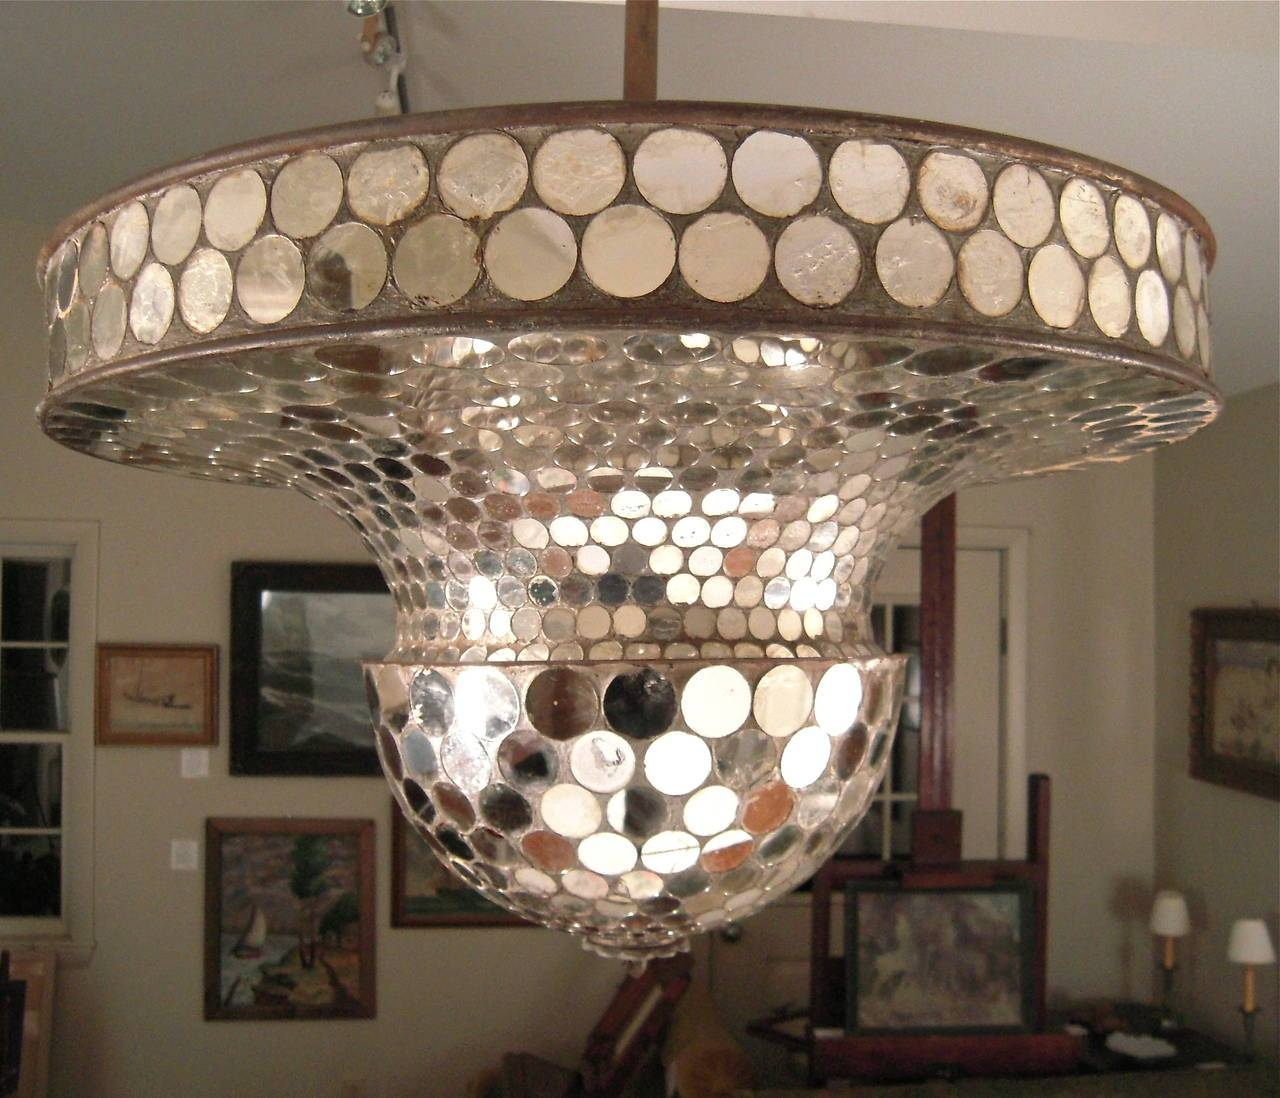 Rare Working Mirrored Stardust Ballroom Light, Early Disco Ball At regarding Disco Ball Ceiling Lights Fixtures (Image 15 of 15)